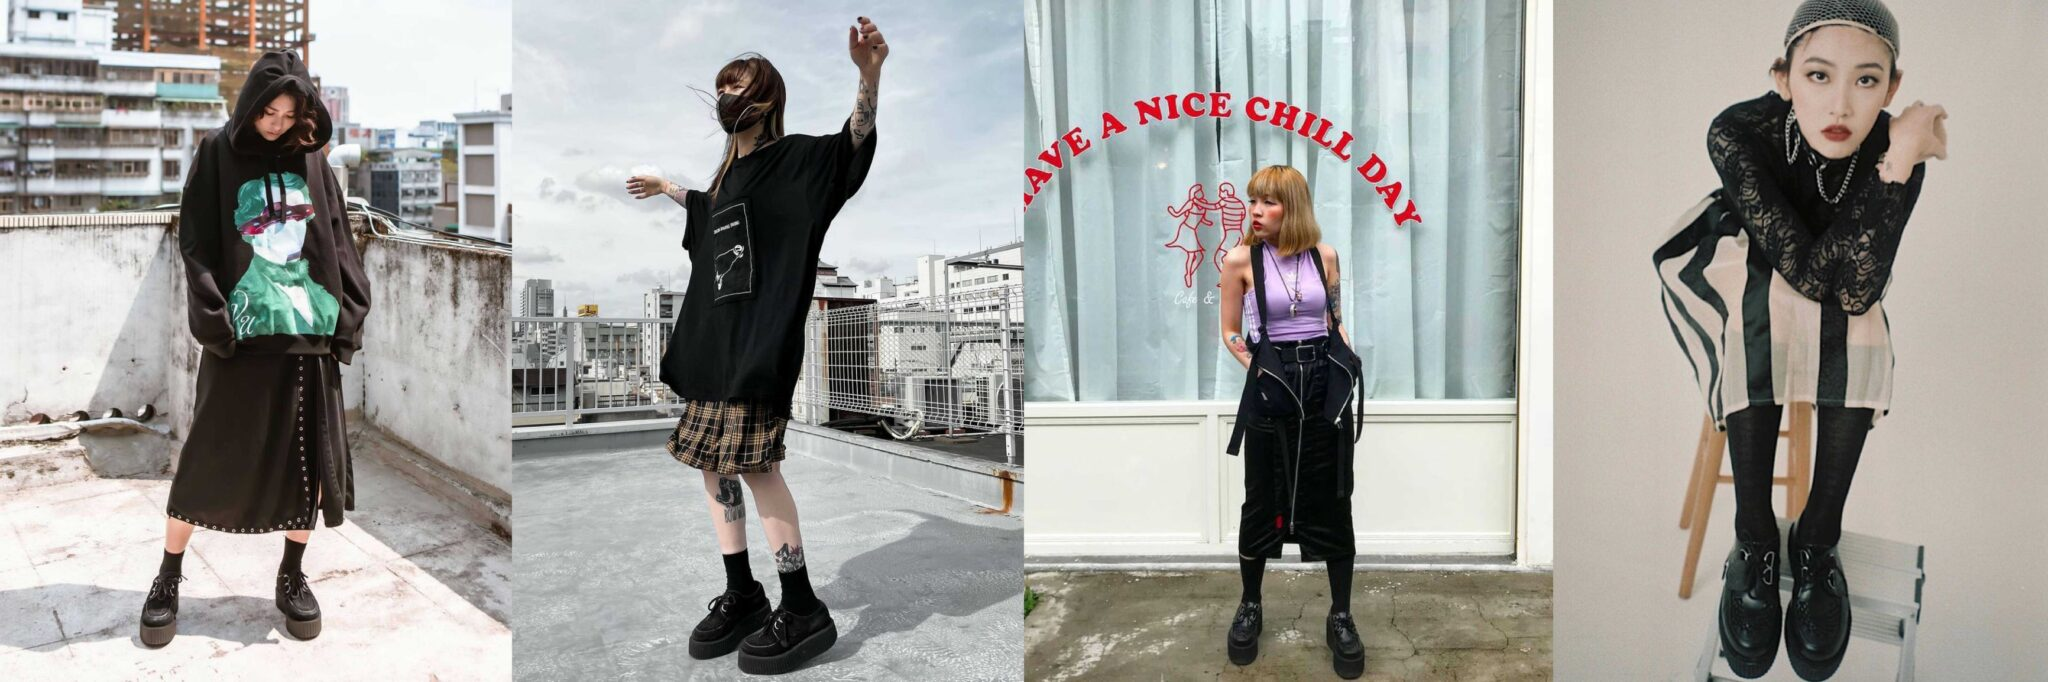 Long skirt - How To Style Creepers - Underground blog